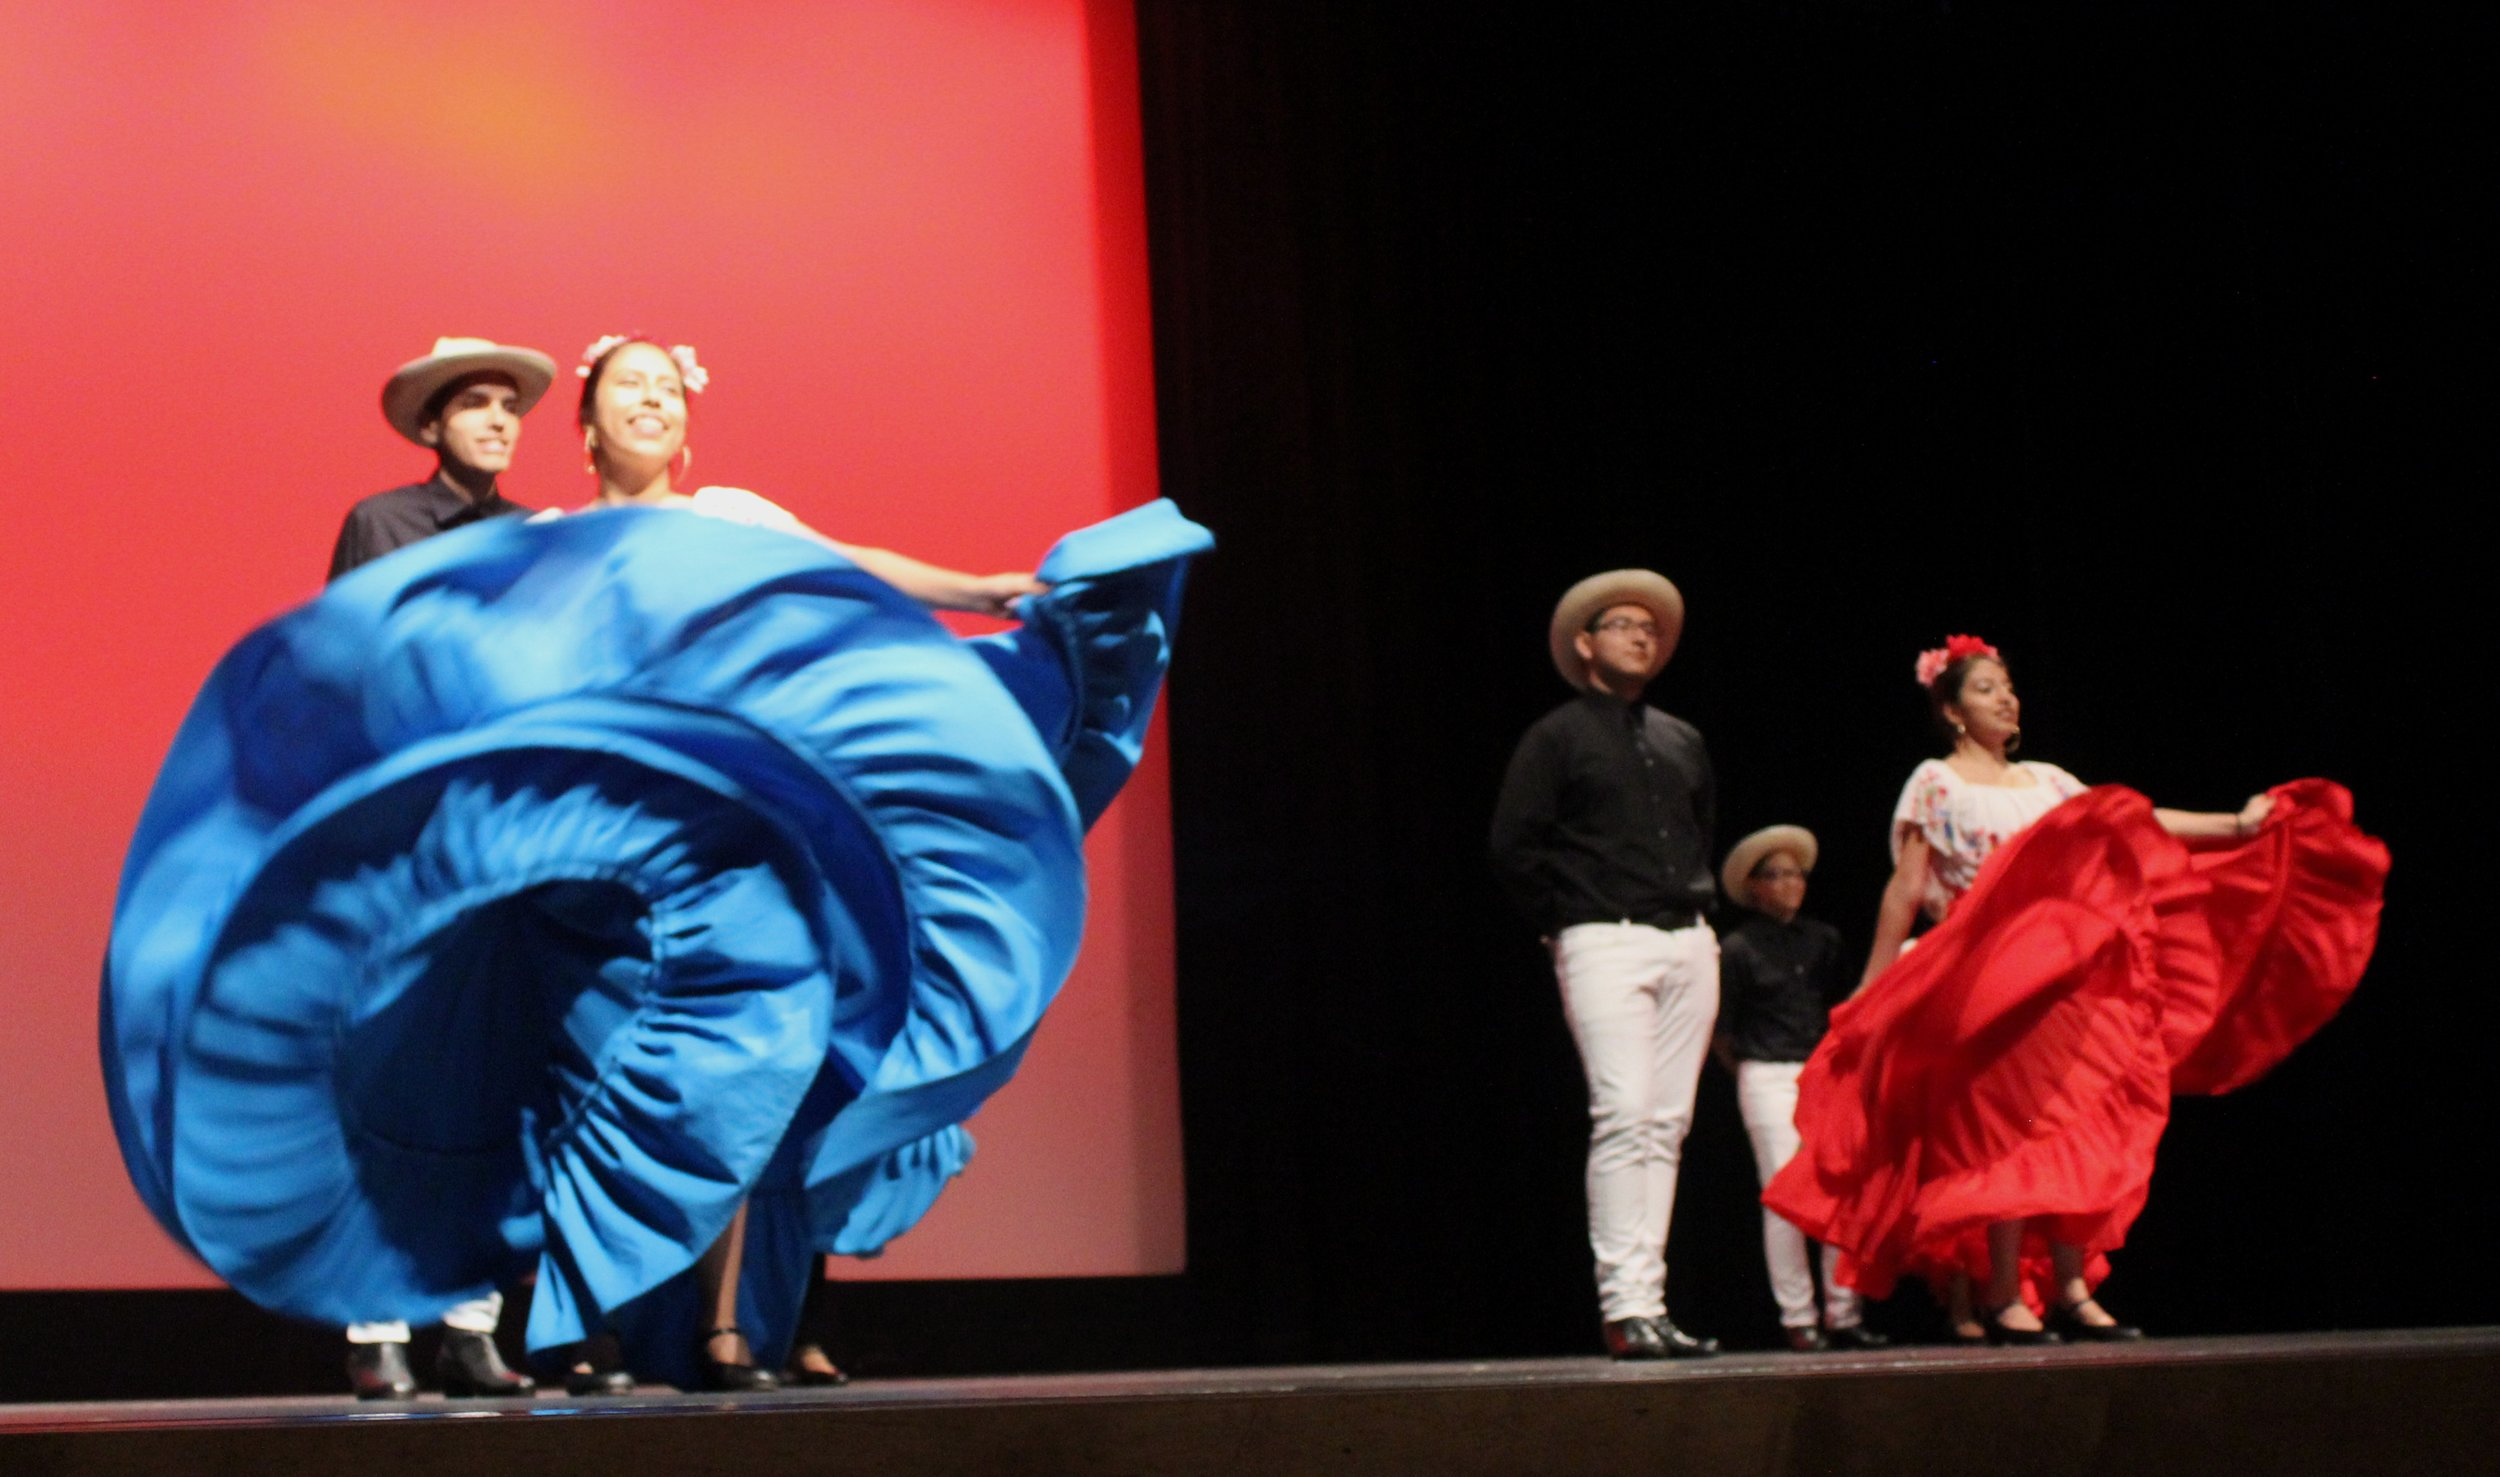 Folklorico dresses dancing in the air.